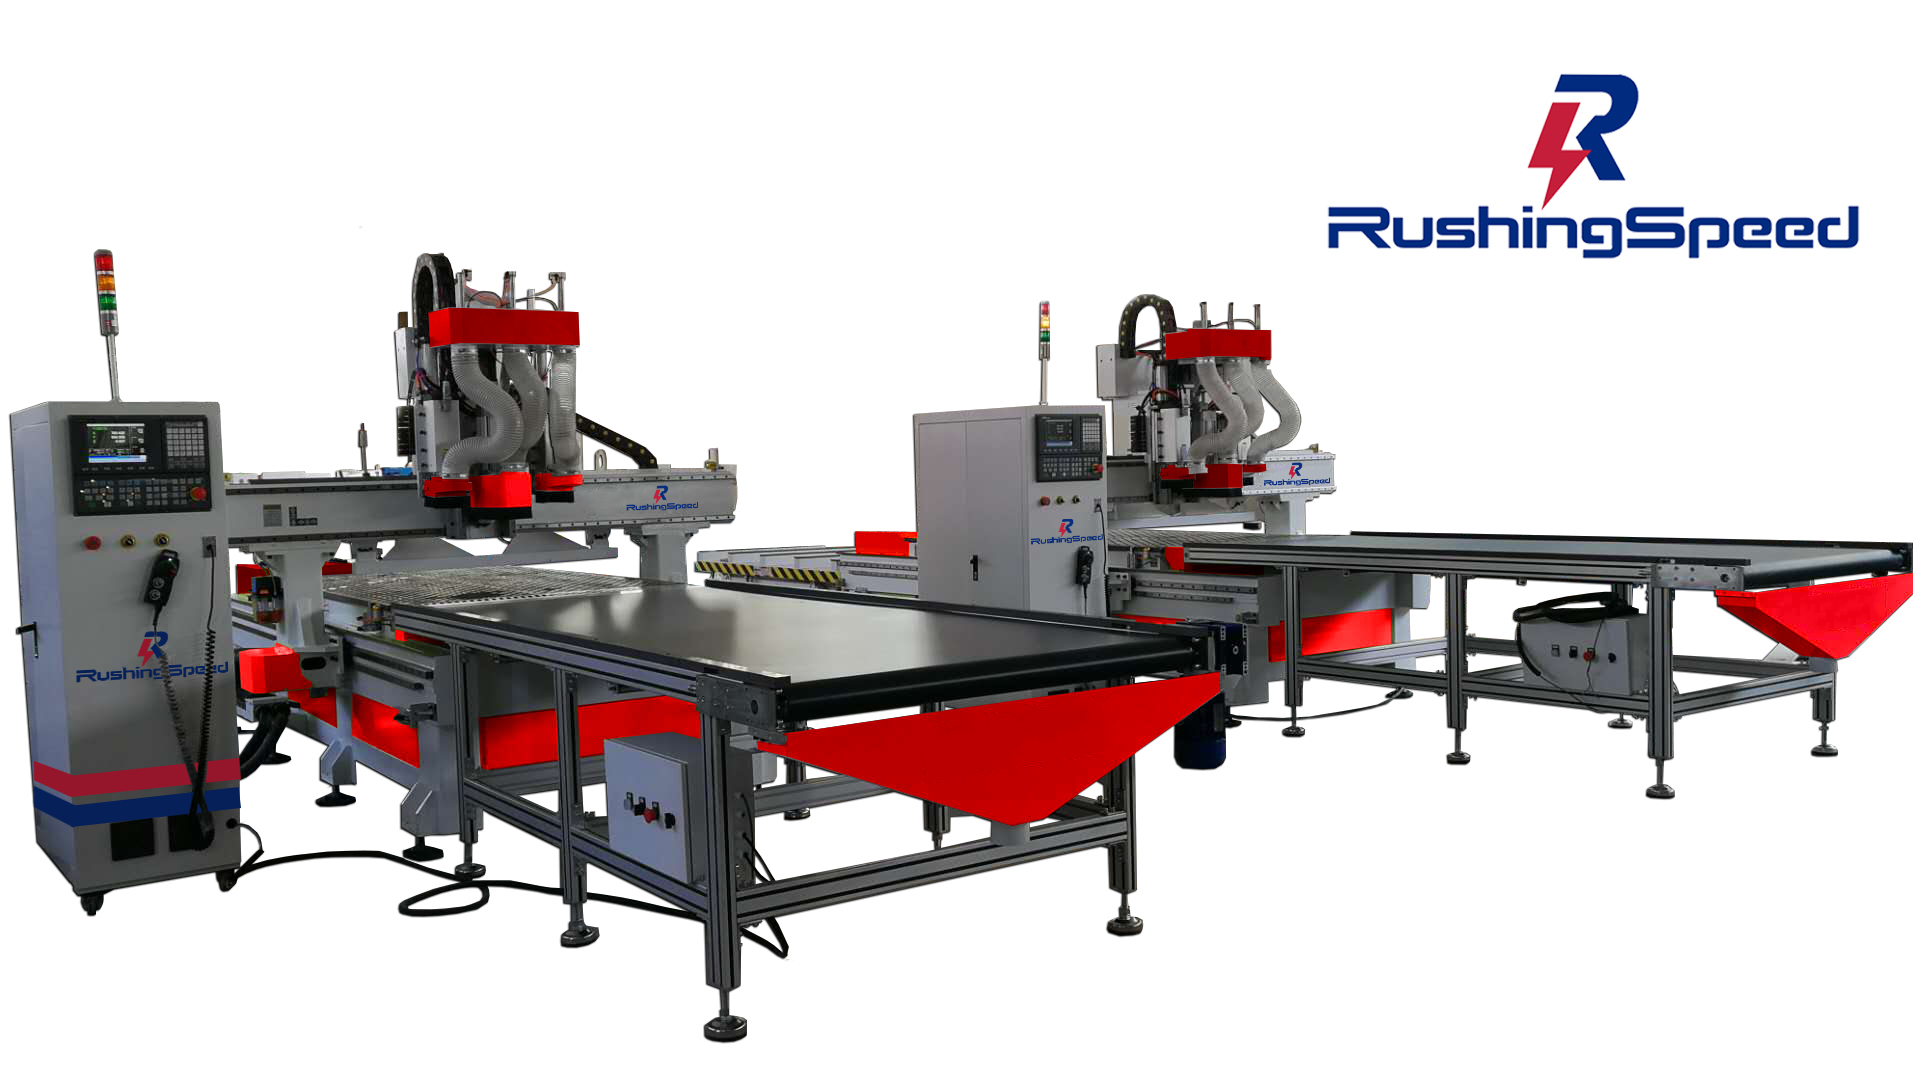 CNC Cutting Router Machine RSM-2500UP